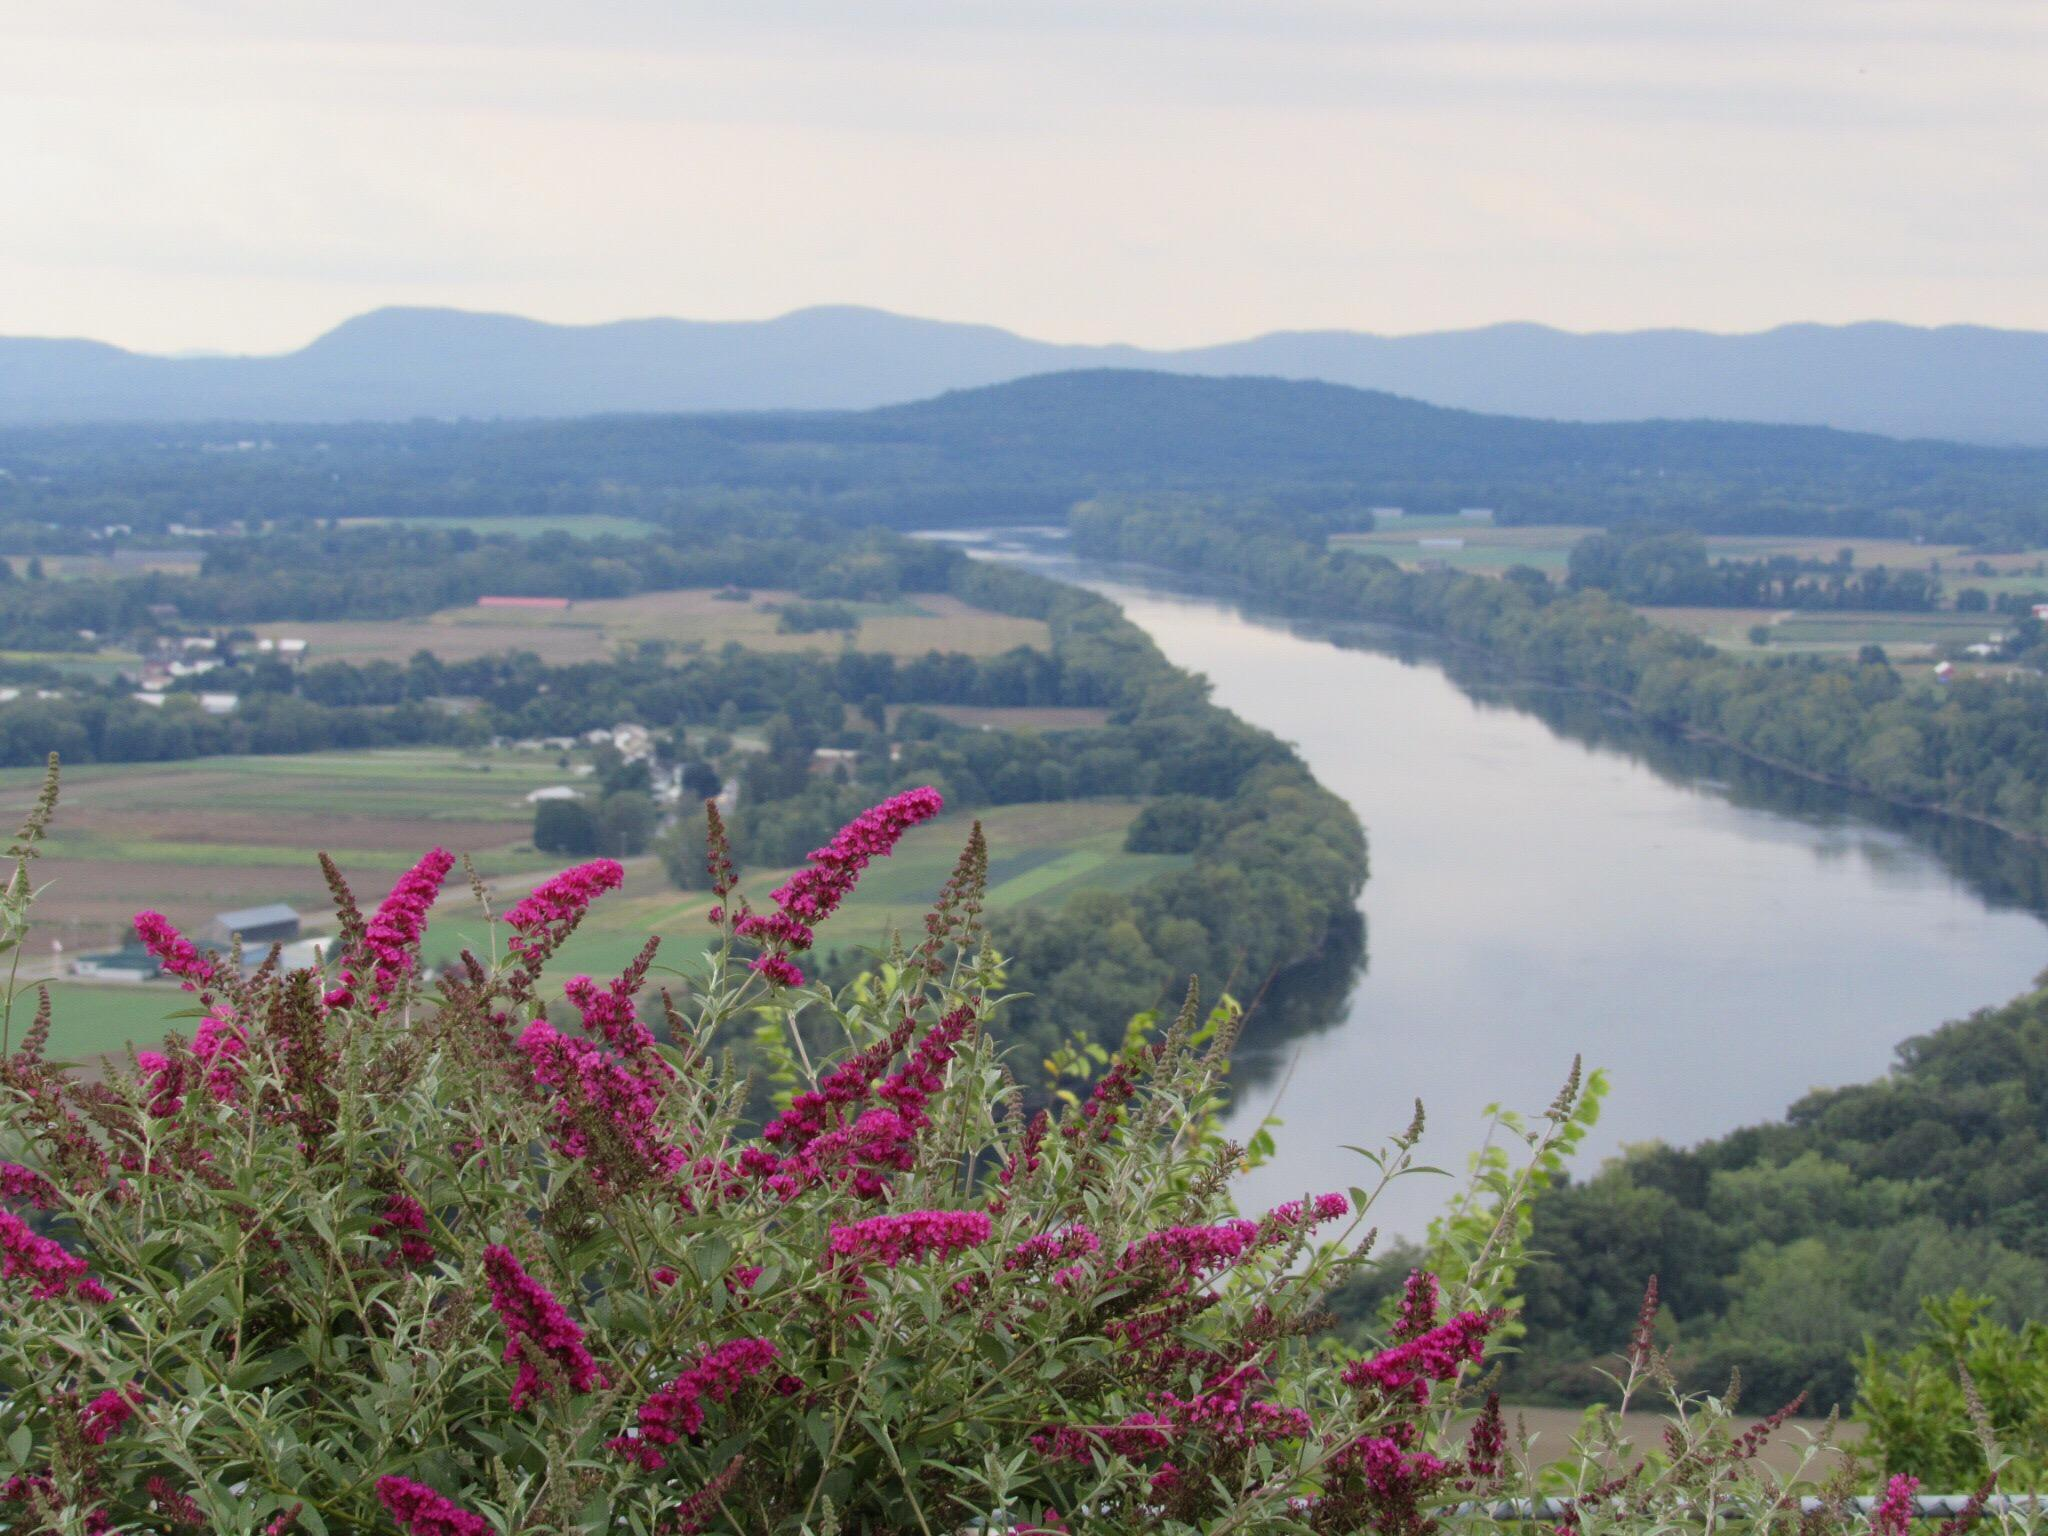 Walk Along Some Of The Tallest Trails In Massachusetts At Mount Sugarloaf State Reservation